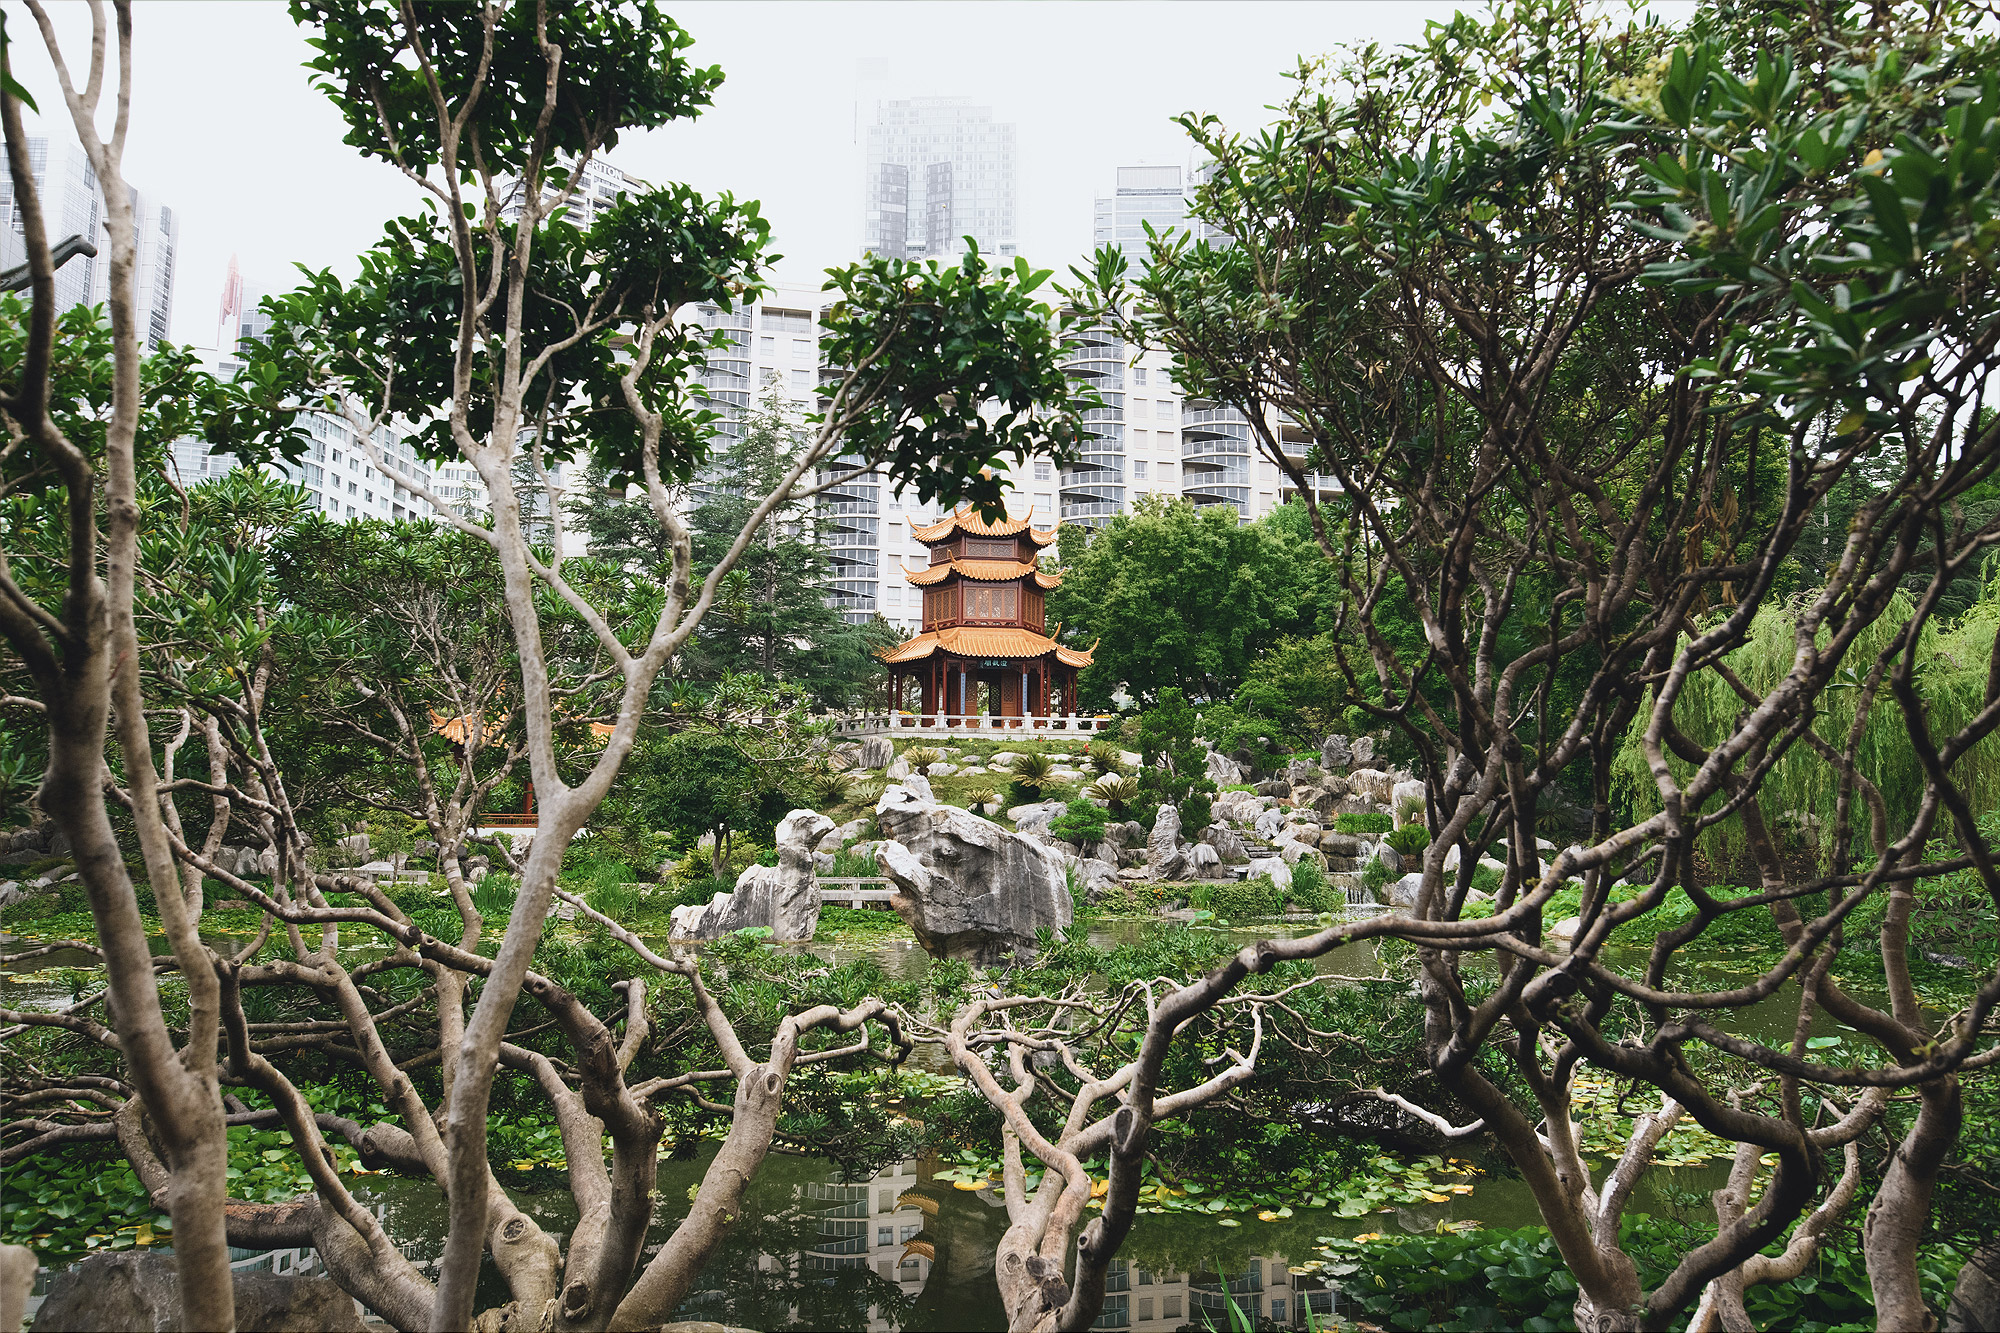 Chinese Garden of Friendship, Darling Harbour